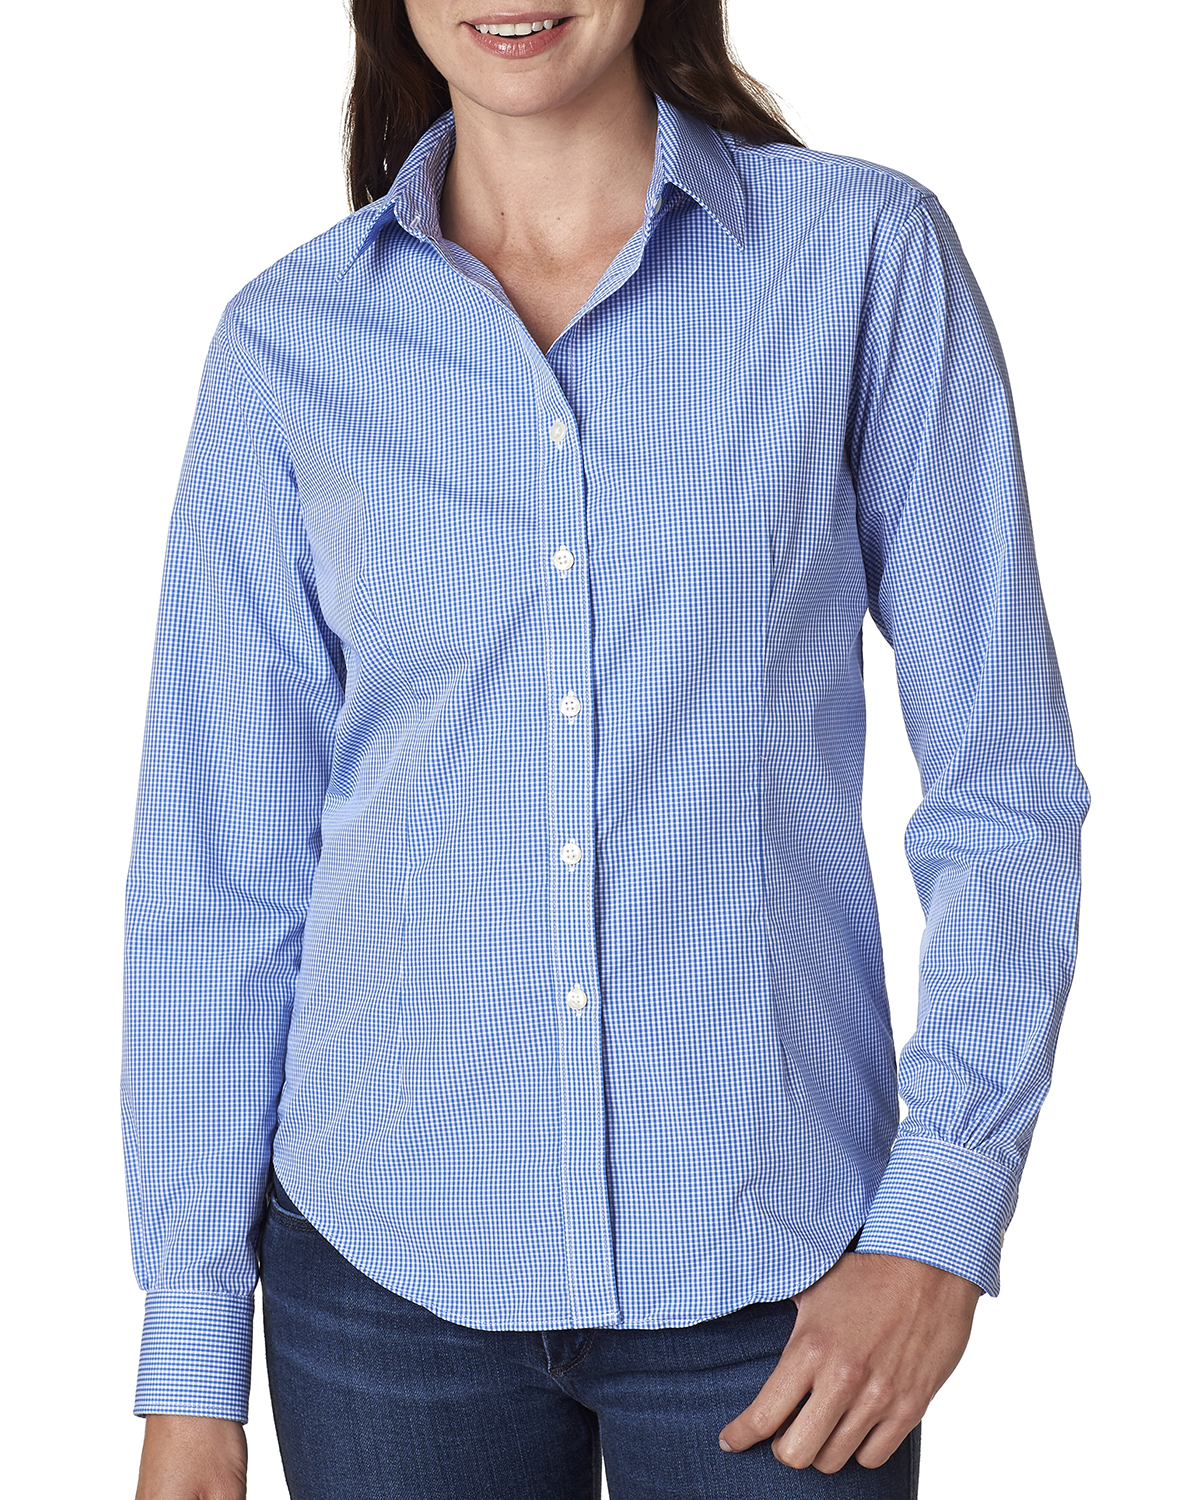 Van Heusen V0226 - Ladies' Long-Sleeve Yarn-Dyed Gingham ...